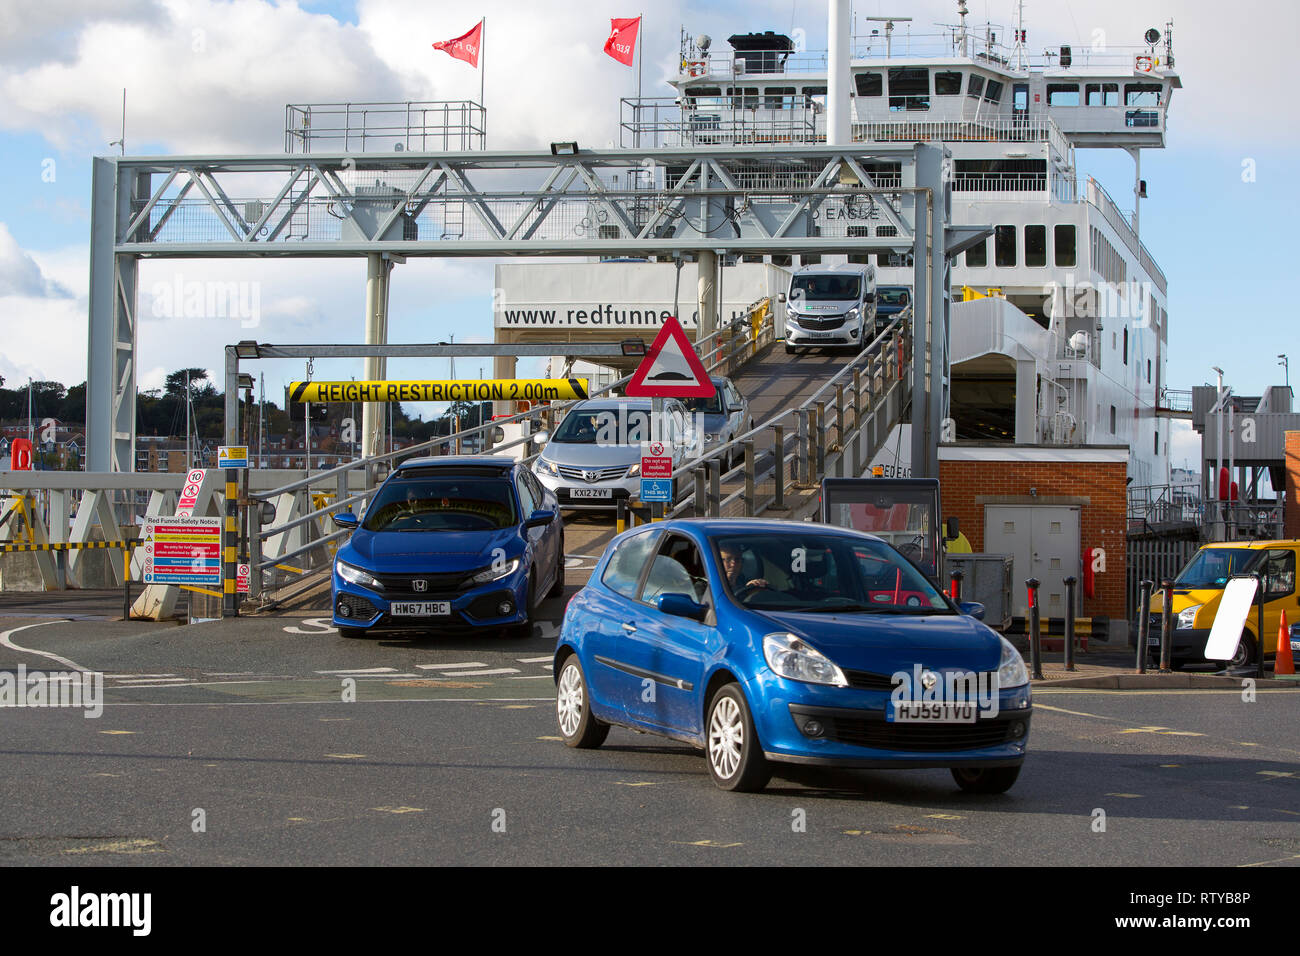 Vehicles, being, unloaded, from, Red Funnel, ferry, terminal, East Cowes, Isle of Wight, England, UK, - Stock Image